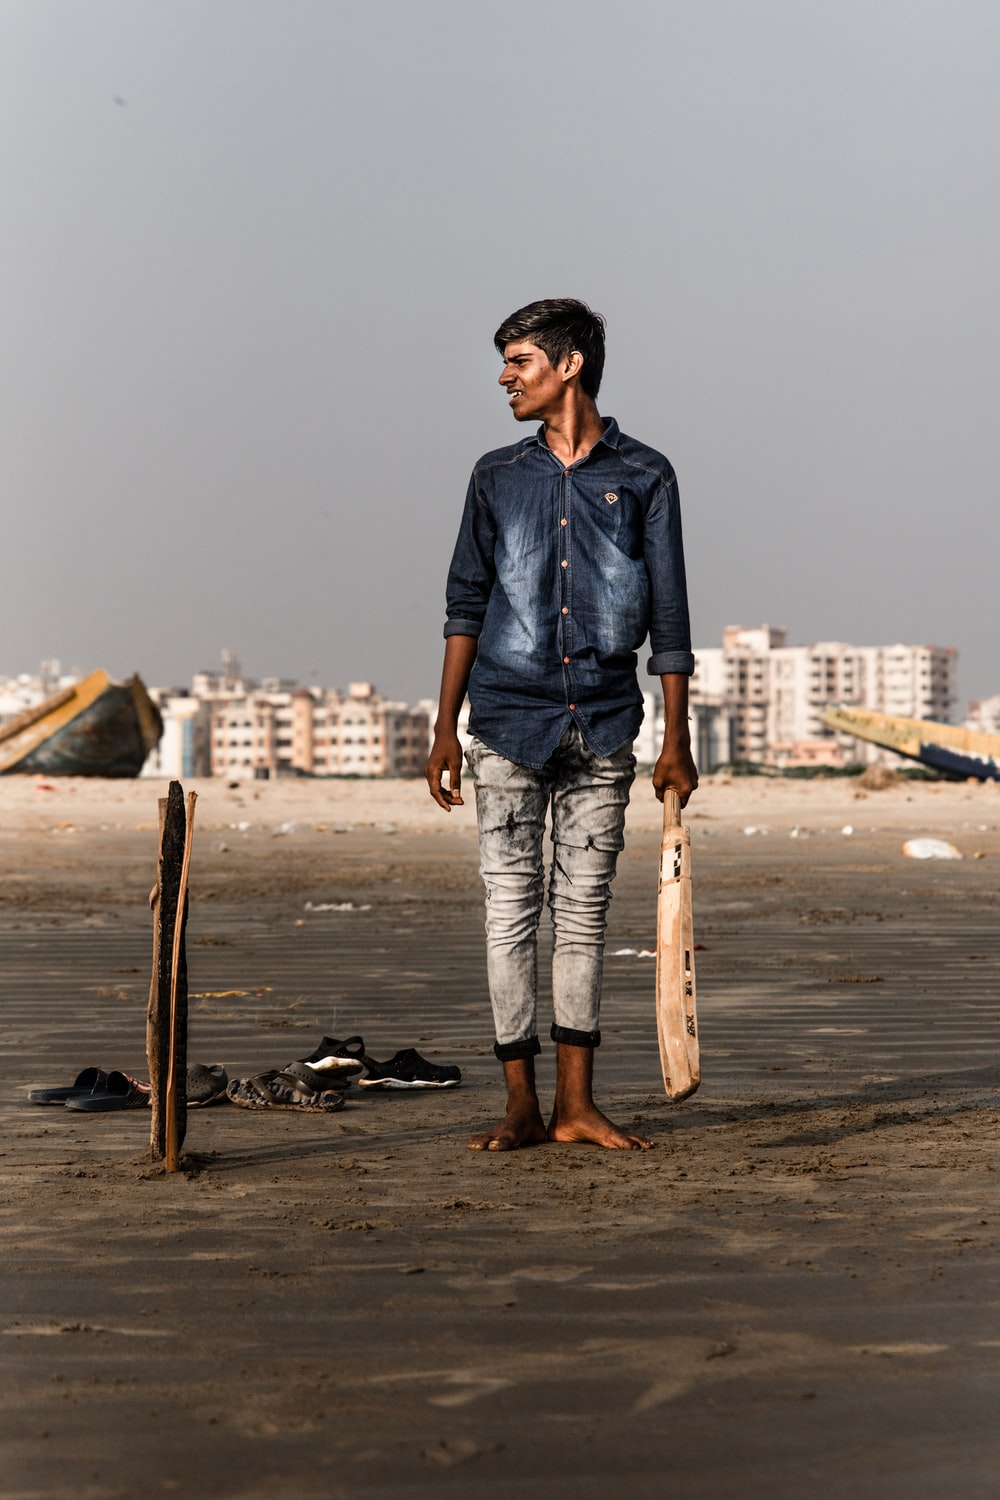 smiling man standing holding cricket bat while looking at right side during daytime